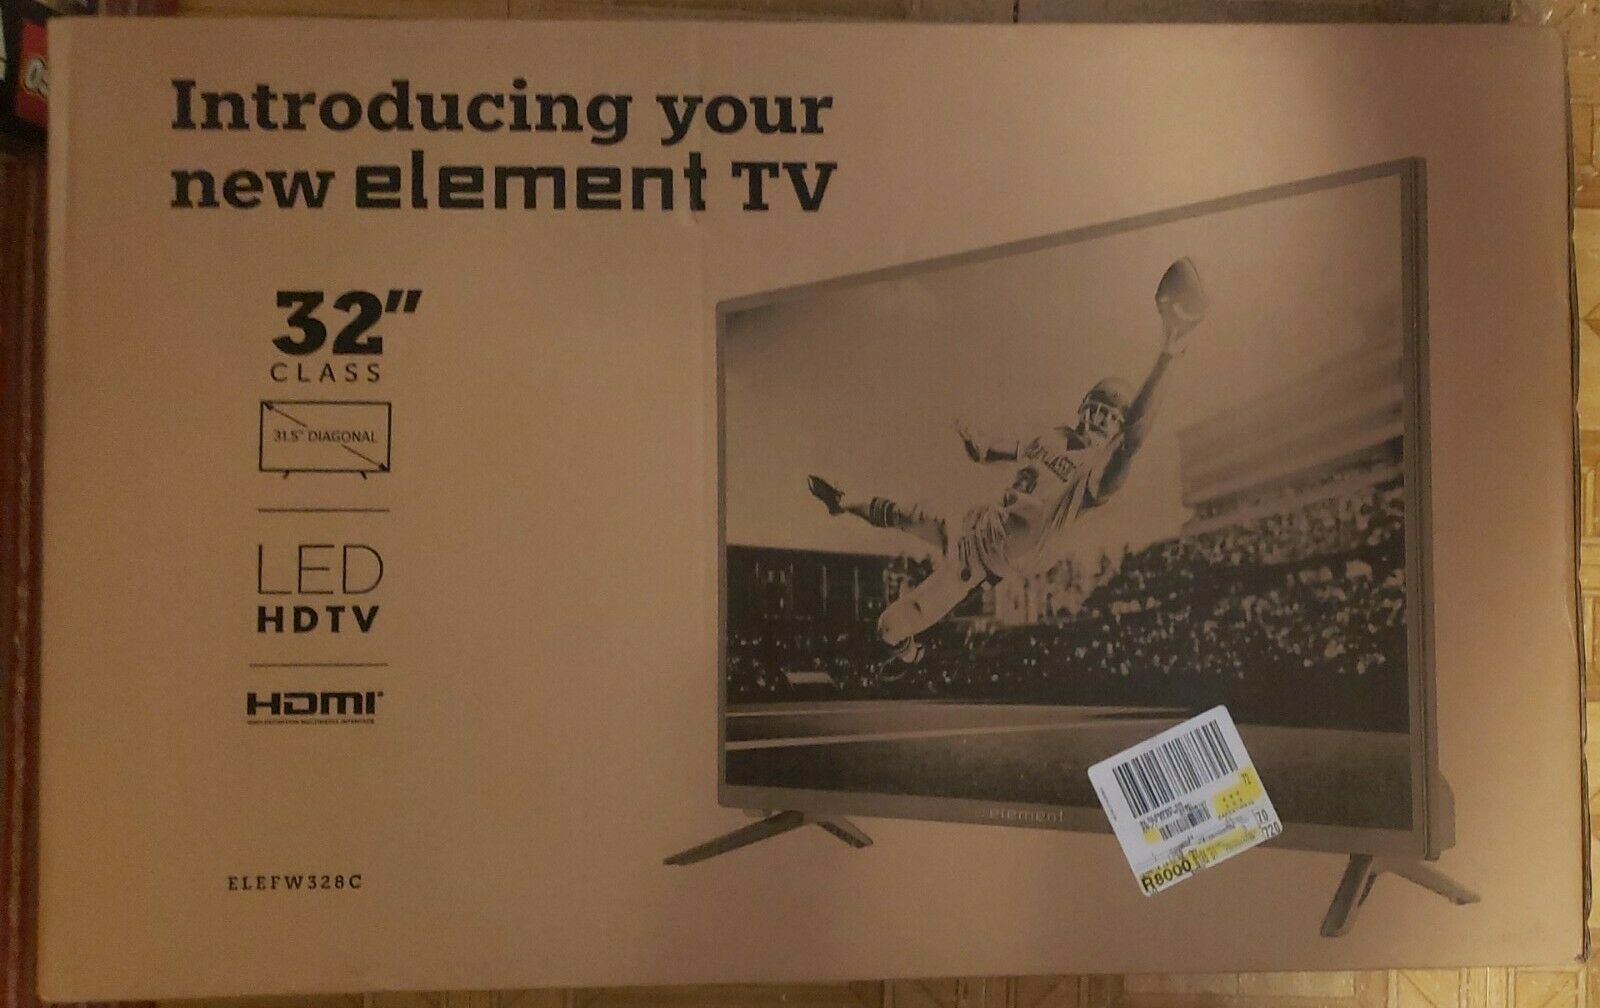 Element 32 TV HDTV LED 720p ELEFW328 - C307 - New In Box. Available Now for 299.95